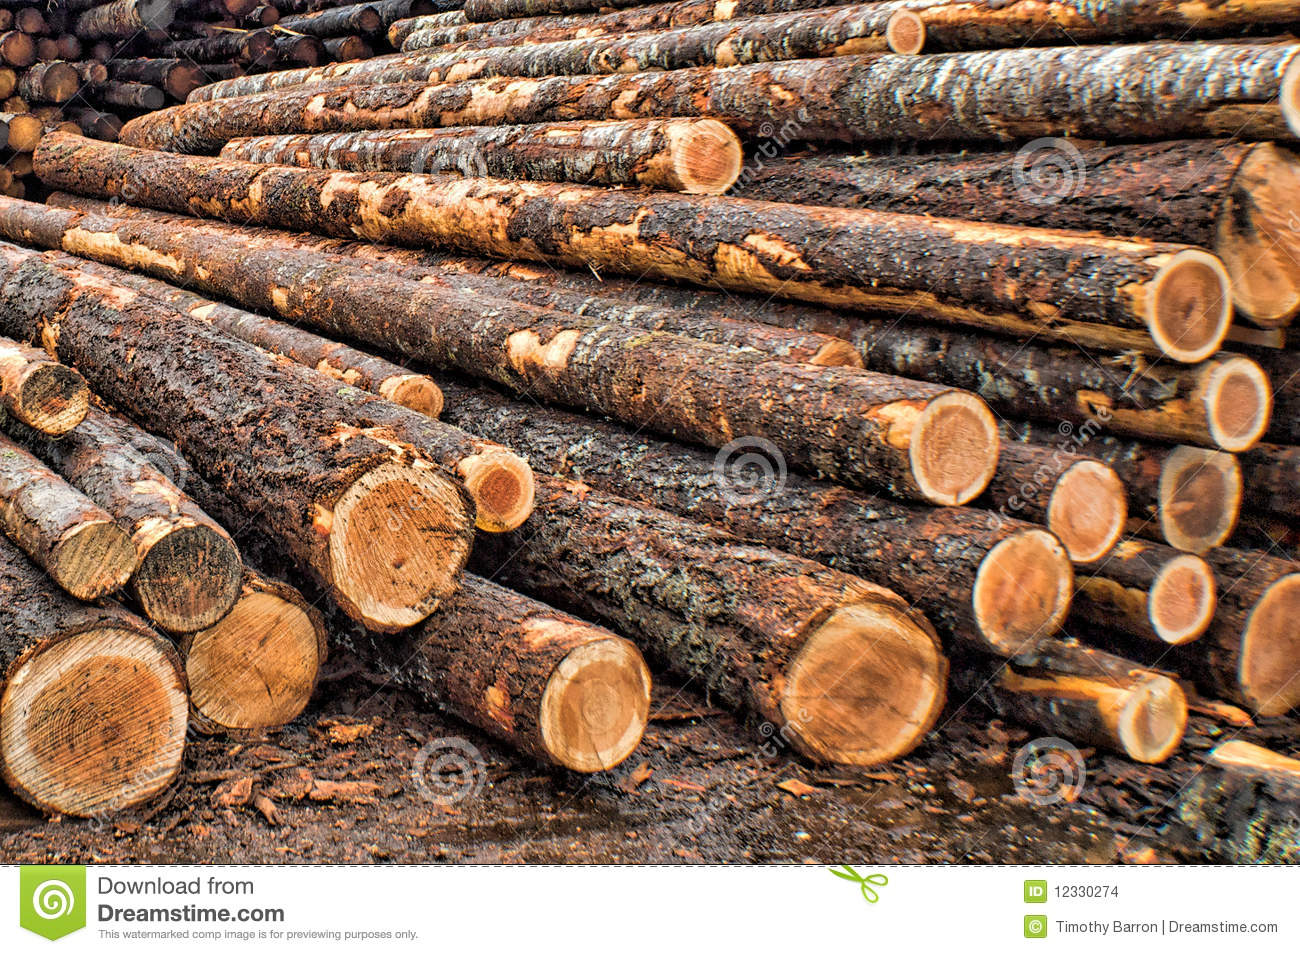 Raw materials stock photo image of building timber for Waste material images